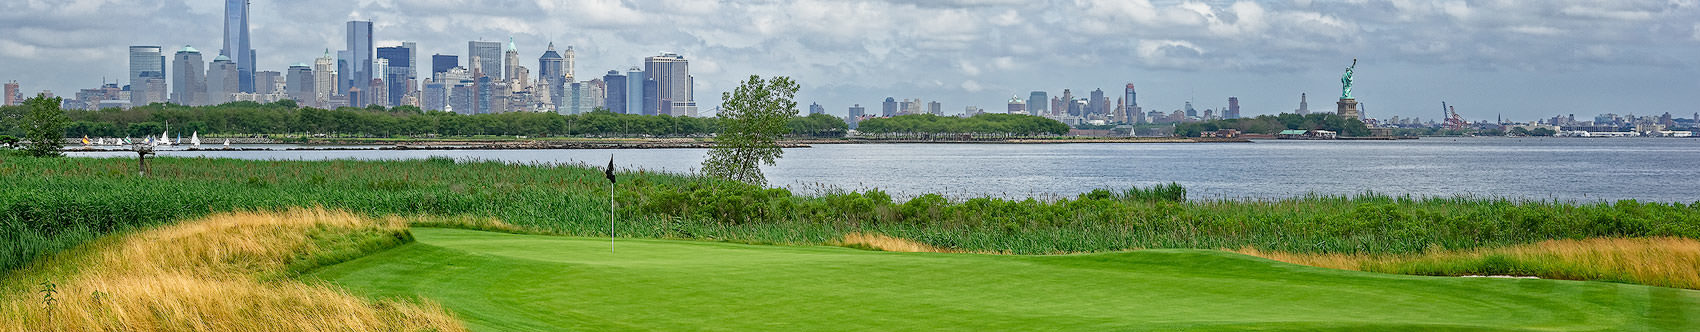 <div class='title'>           LIBERTY NATIONAL GOLF CLUB'S 14TH HOLE         </div>                 <div class='description'>           Across the 14th green, with the Manhattan skyline to the left and The Statue of Liberty to the right, in the background.         </div>